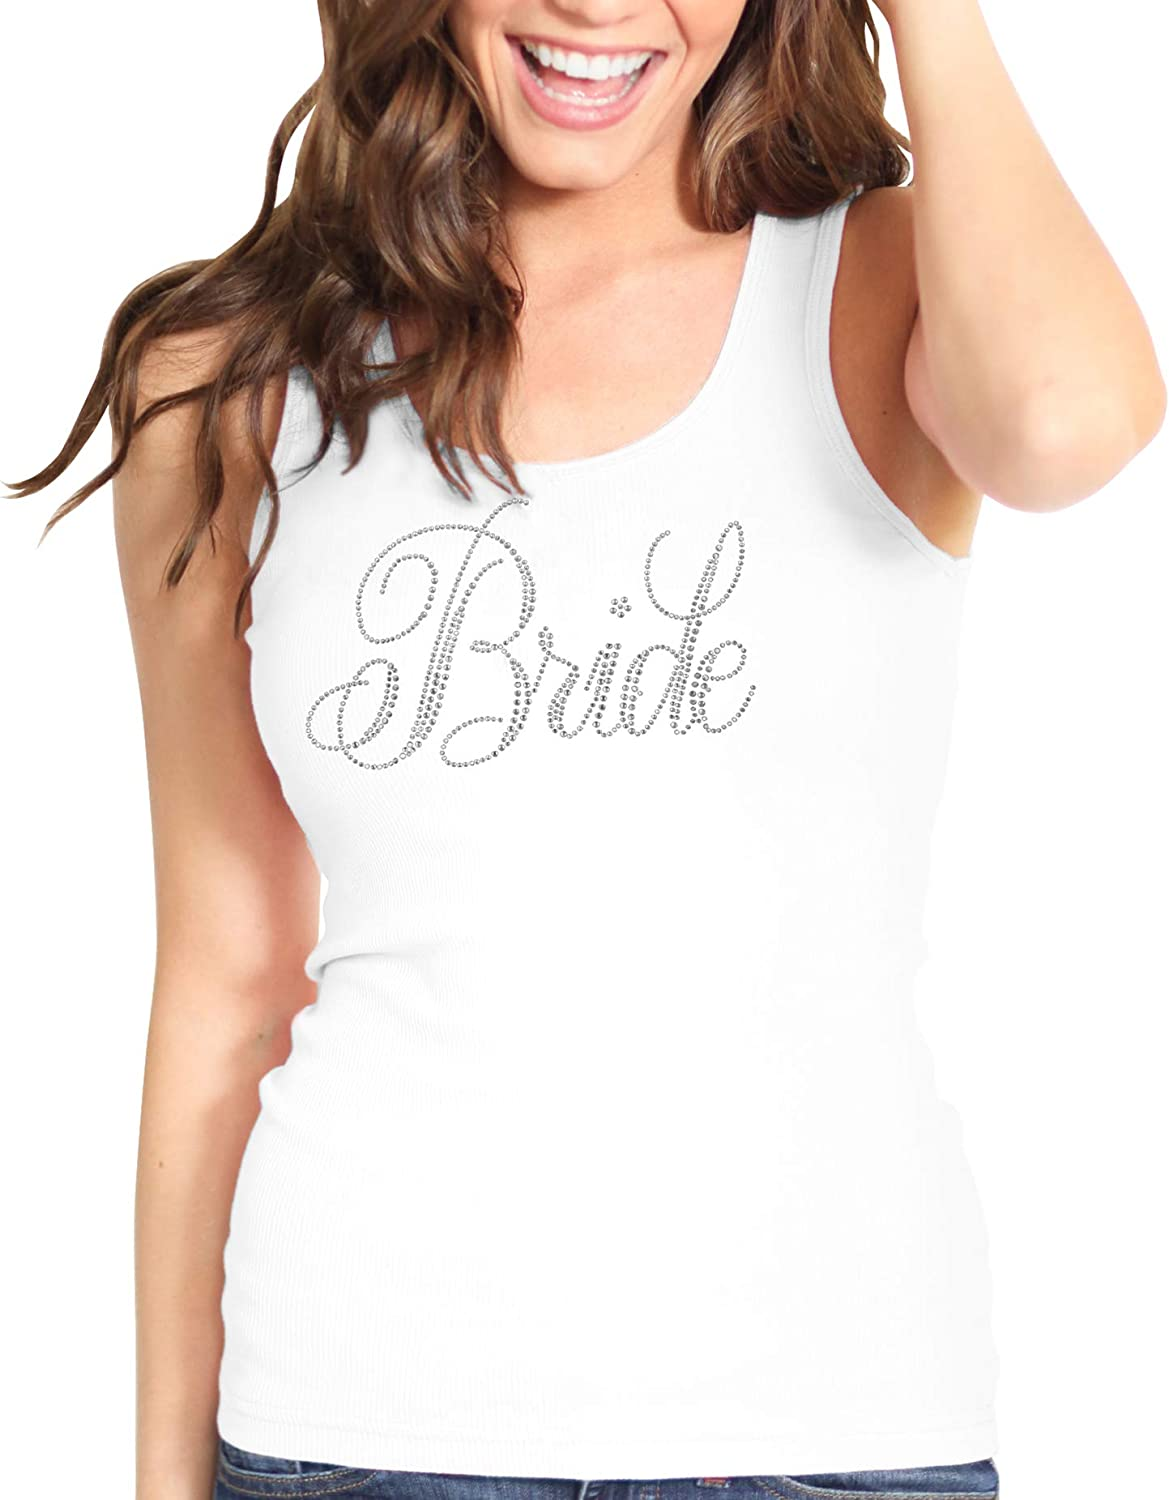 Bride & Bridal Tank Tops - Bridesmaid Maid of Honor Bachelorette Party Entourage Shirts